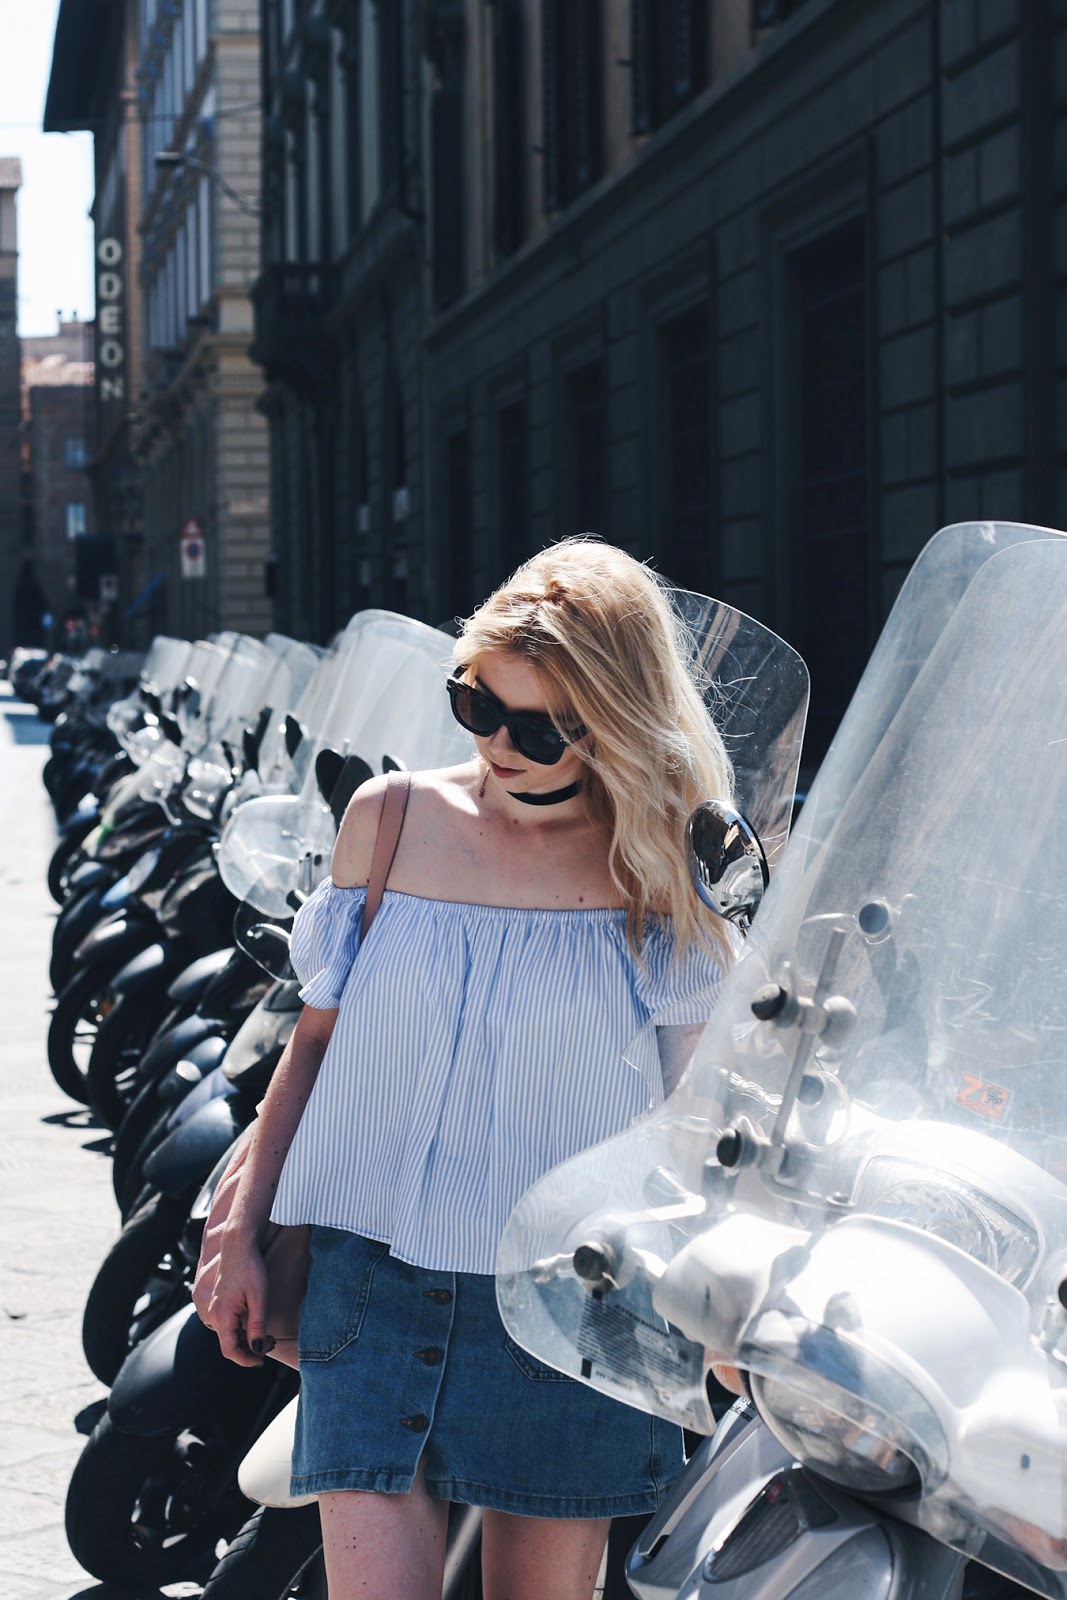 One day in Florence Zara denim skirt off the shoulder top outfit